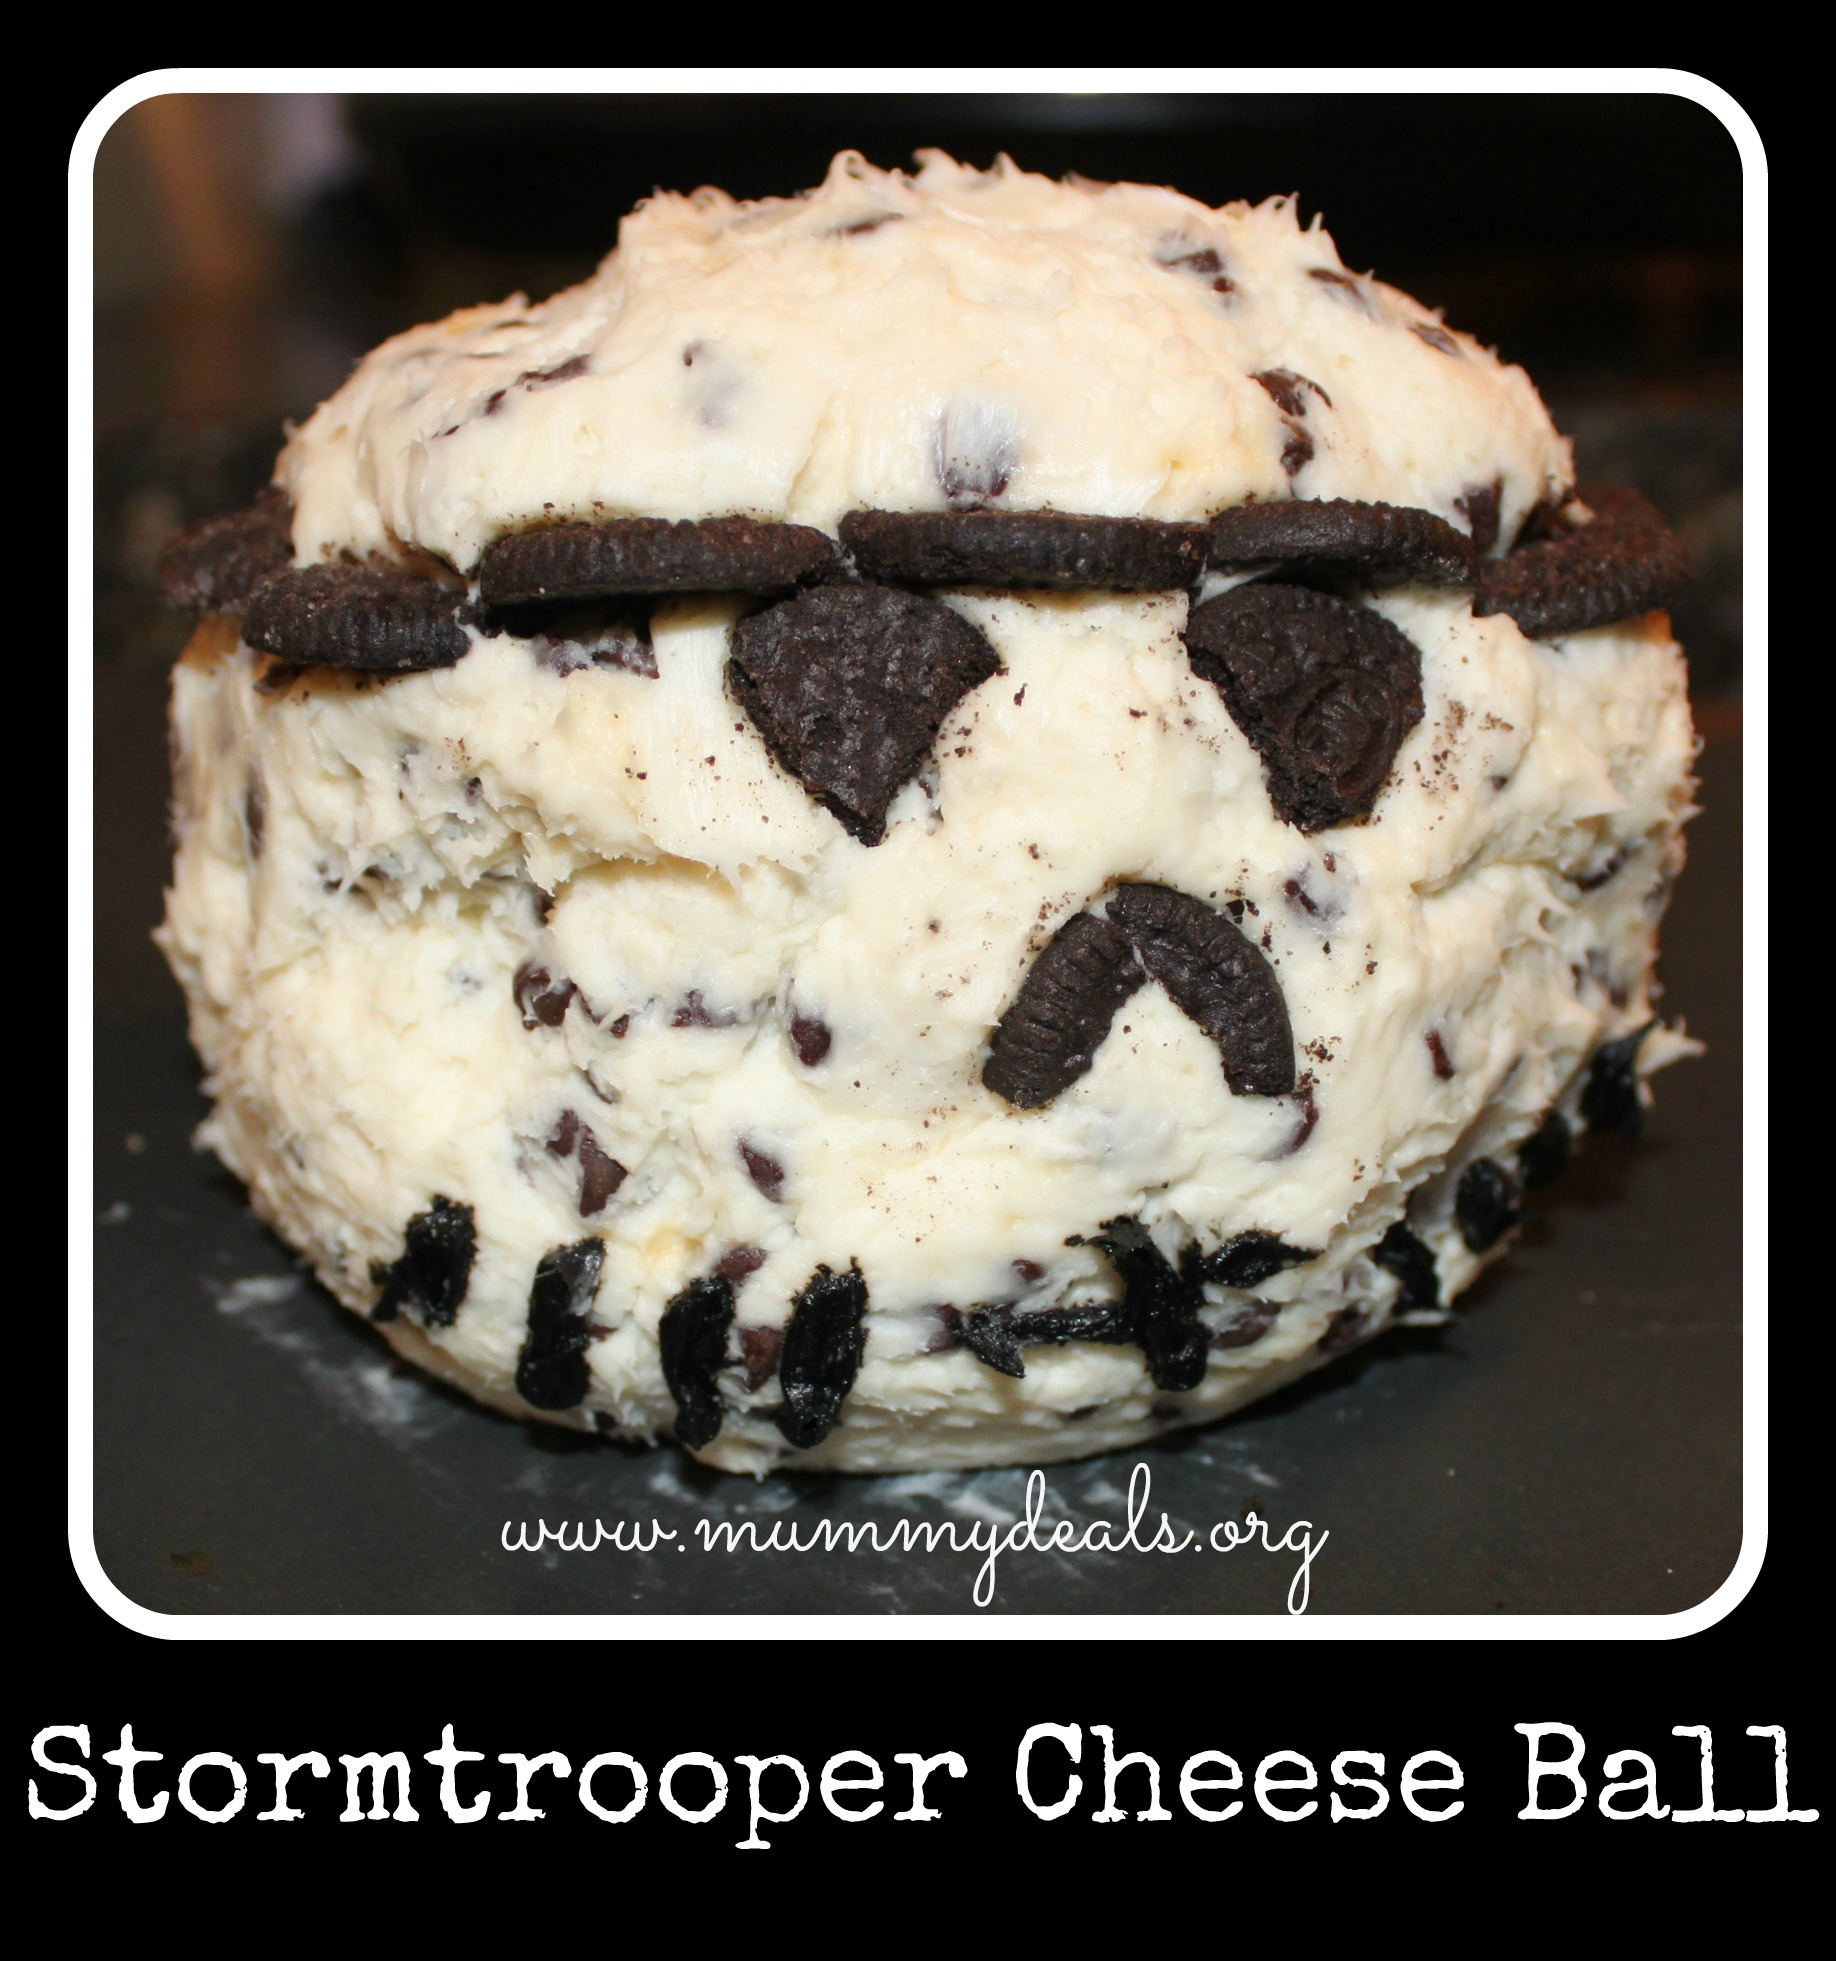 Stormtrooper Cheese Ball